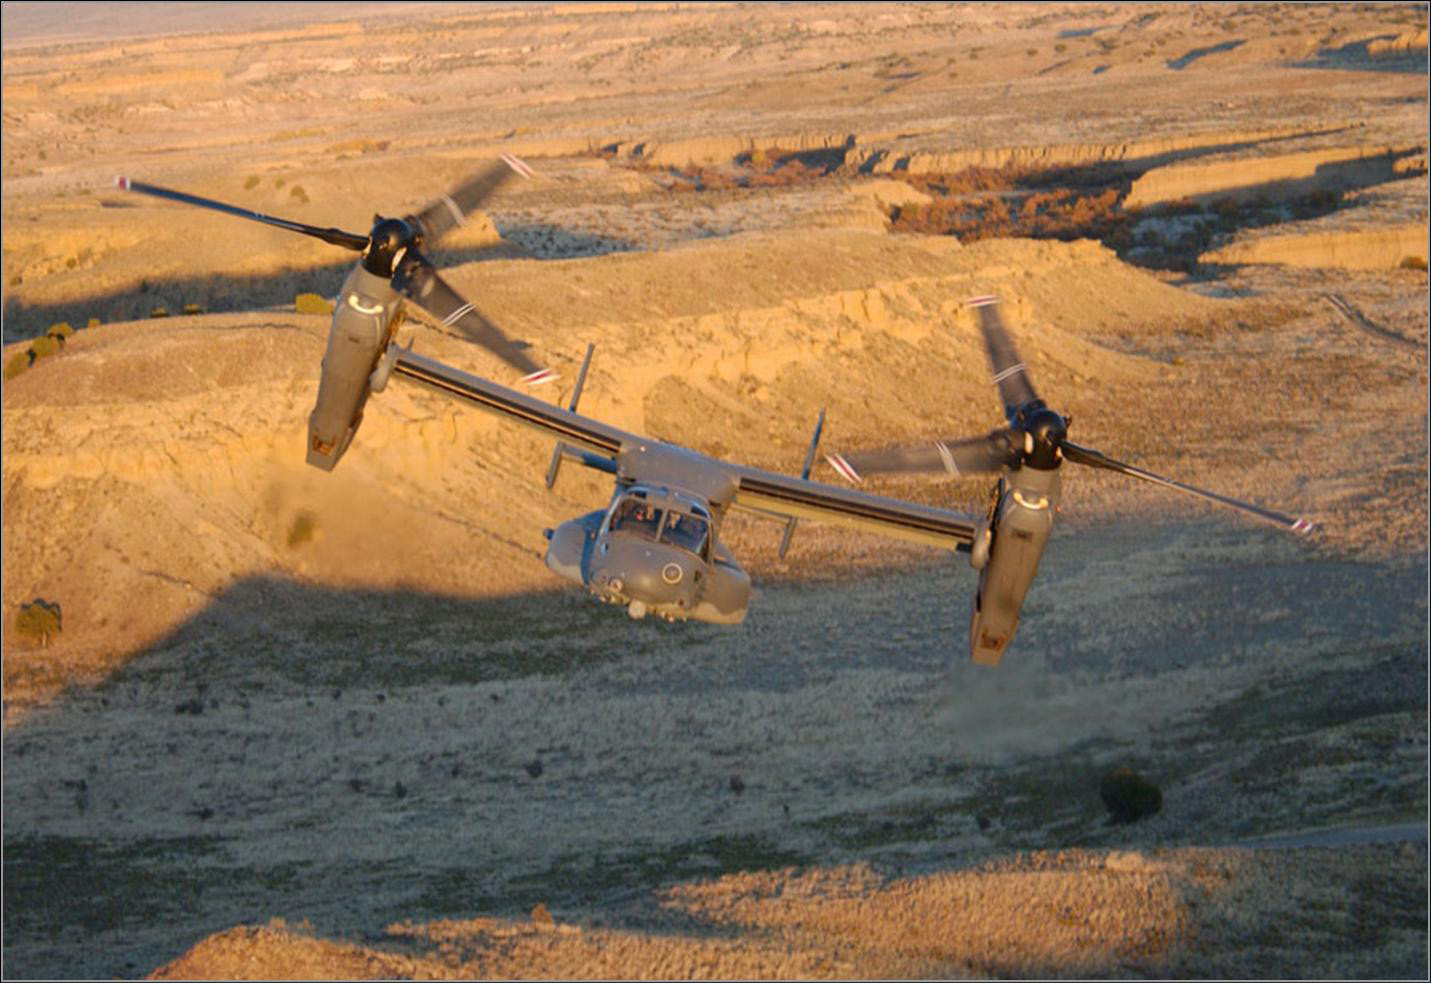 Photo Credit: Air Force Operation Test & Evaluation Center